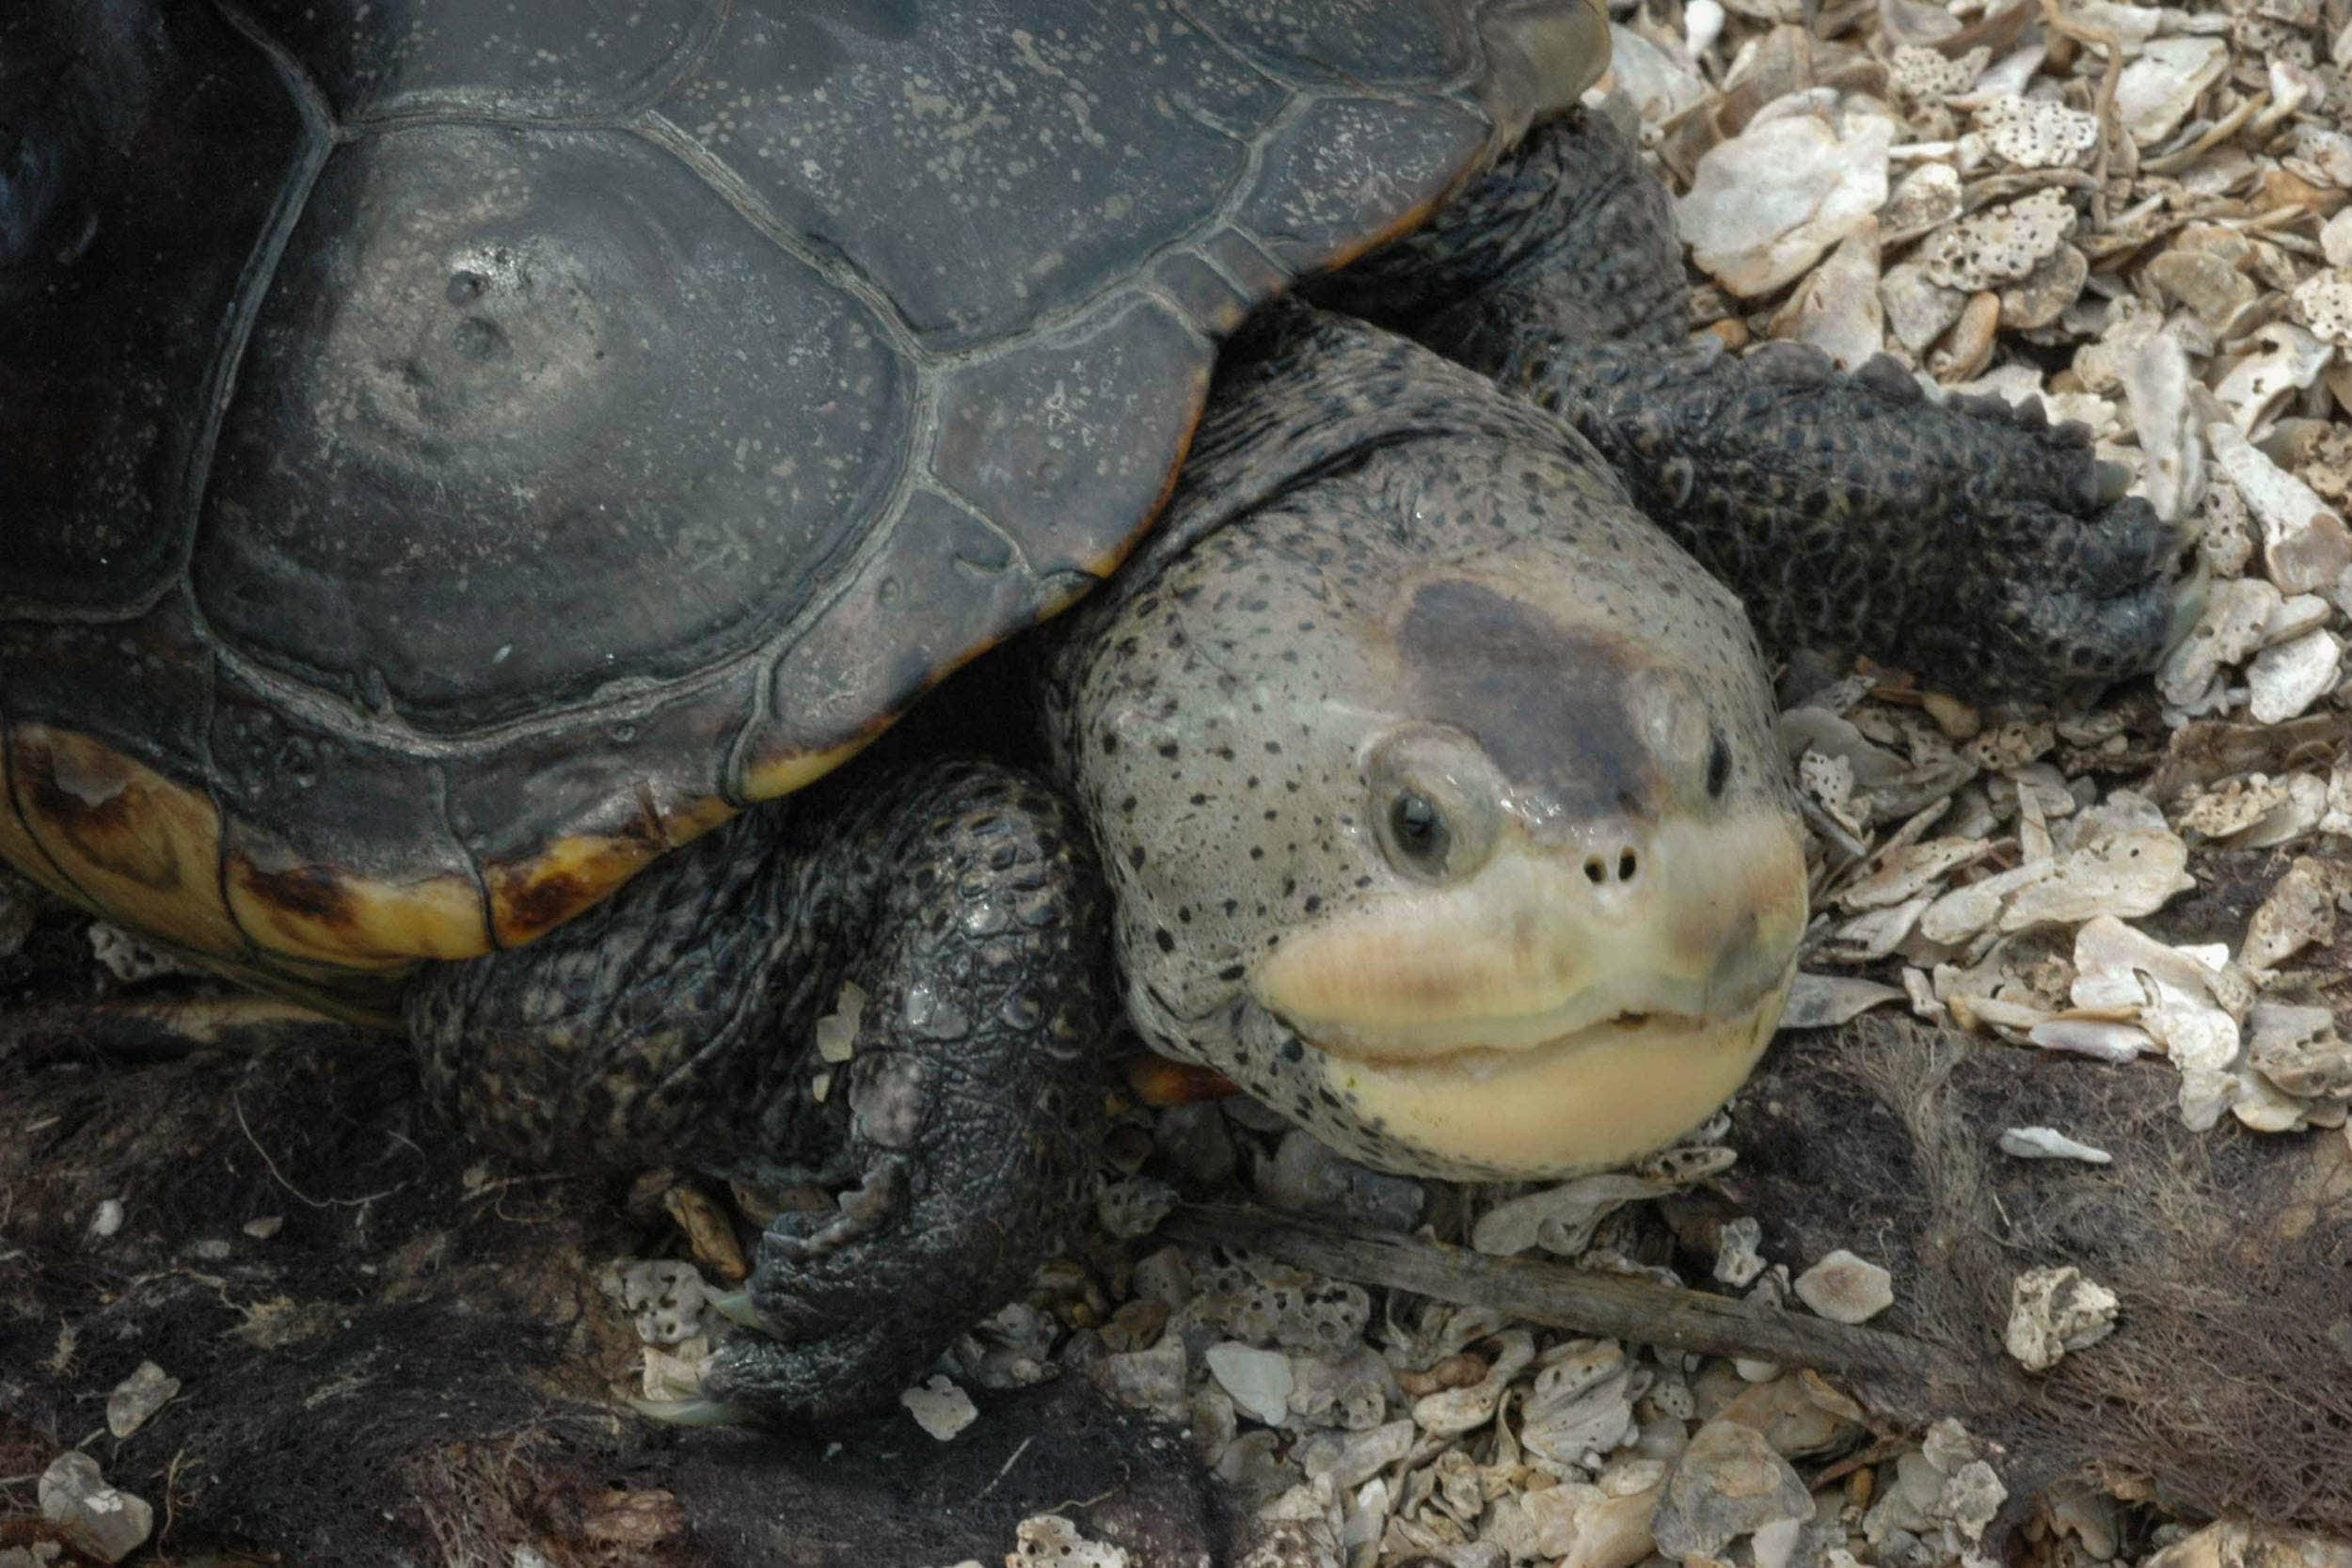 Female diamondback terrapins are much larger than the males.